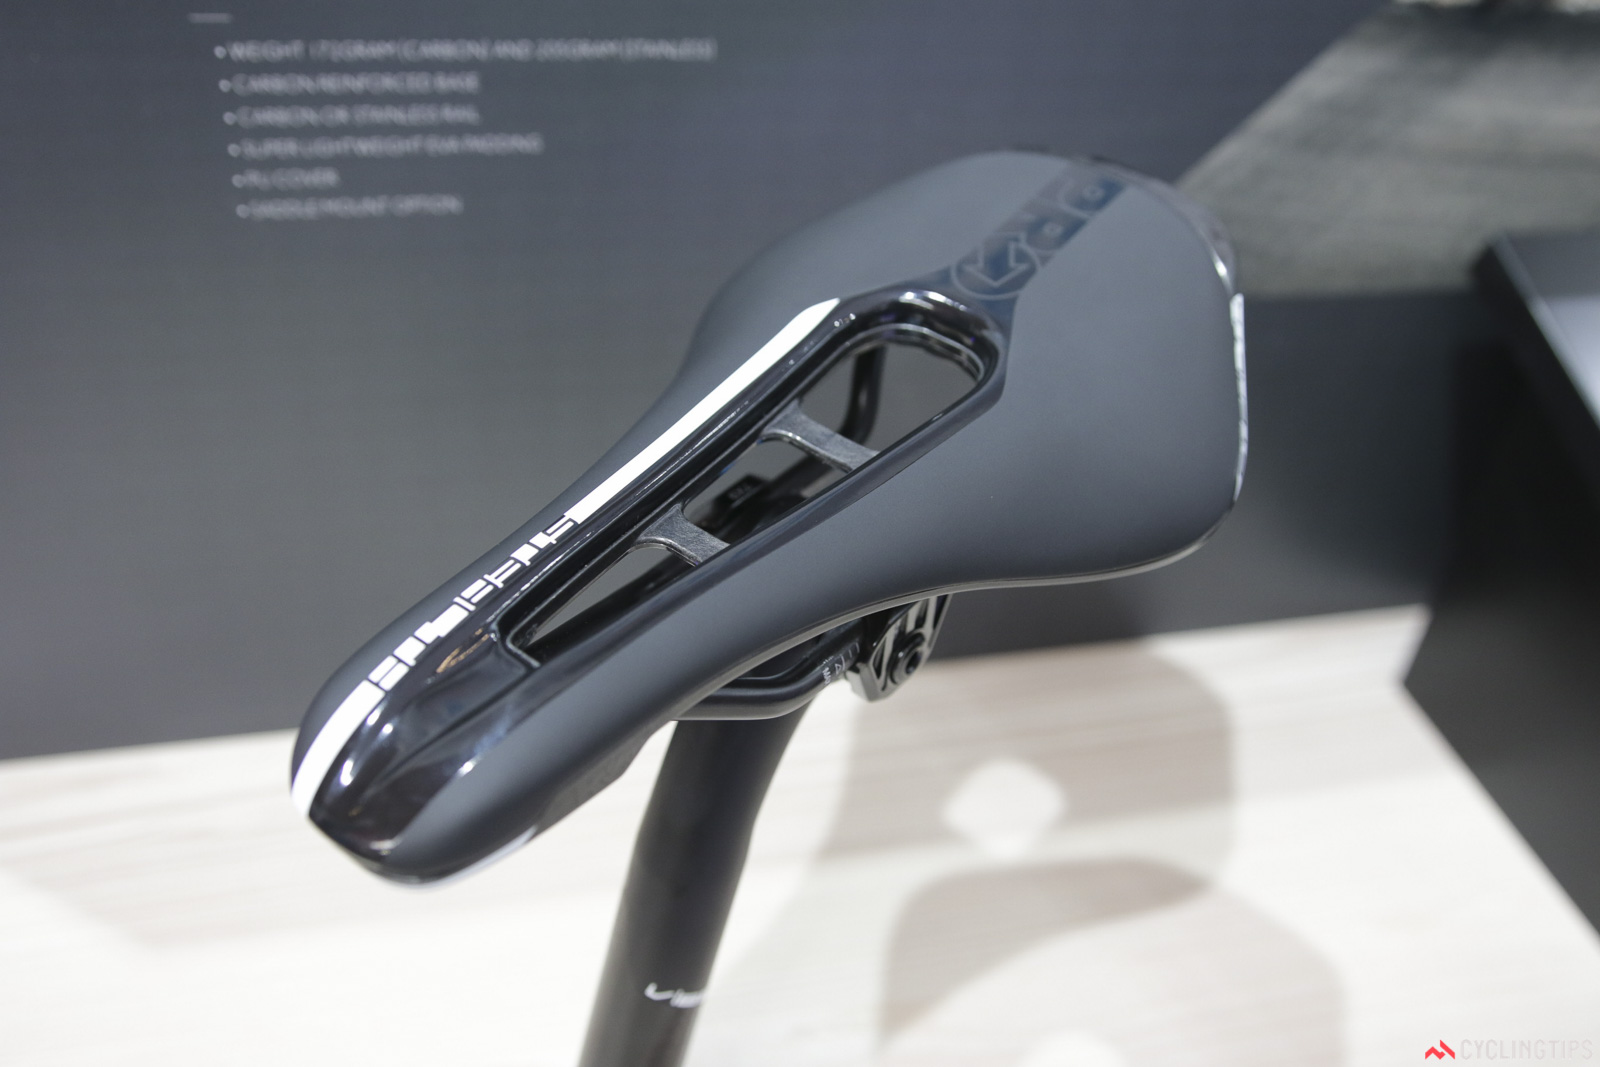 PRO, Shimano's component division, has joined the wide and short road saddle revolution. Named the 'Stealth', this stubby model is claimed to weigh 172g in the carbon version, and 205g in the stainless steel. It'll be available in 142 and 152mm width choice. This, and nearly all other PRO saddles, now included an accessory mount beneath, PRO will soon offer camera, race number and other brackets for direct mounting. Photo: David Rome.